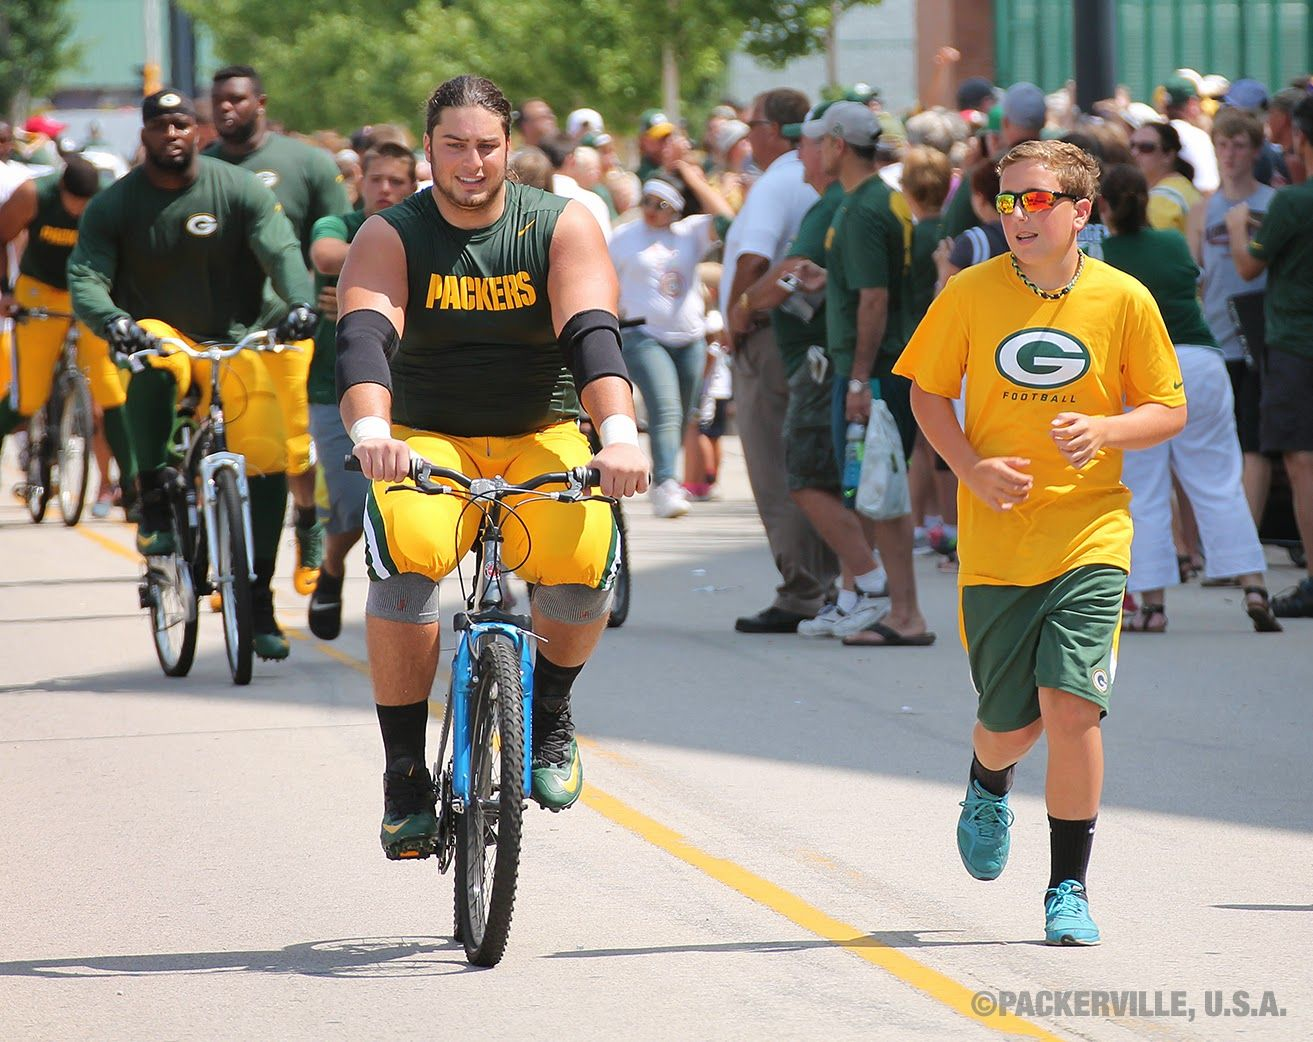 Packer training camp traditions